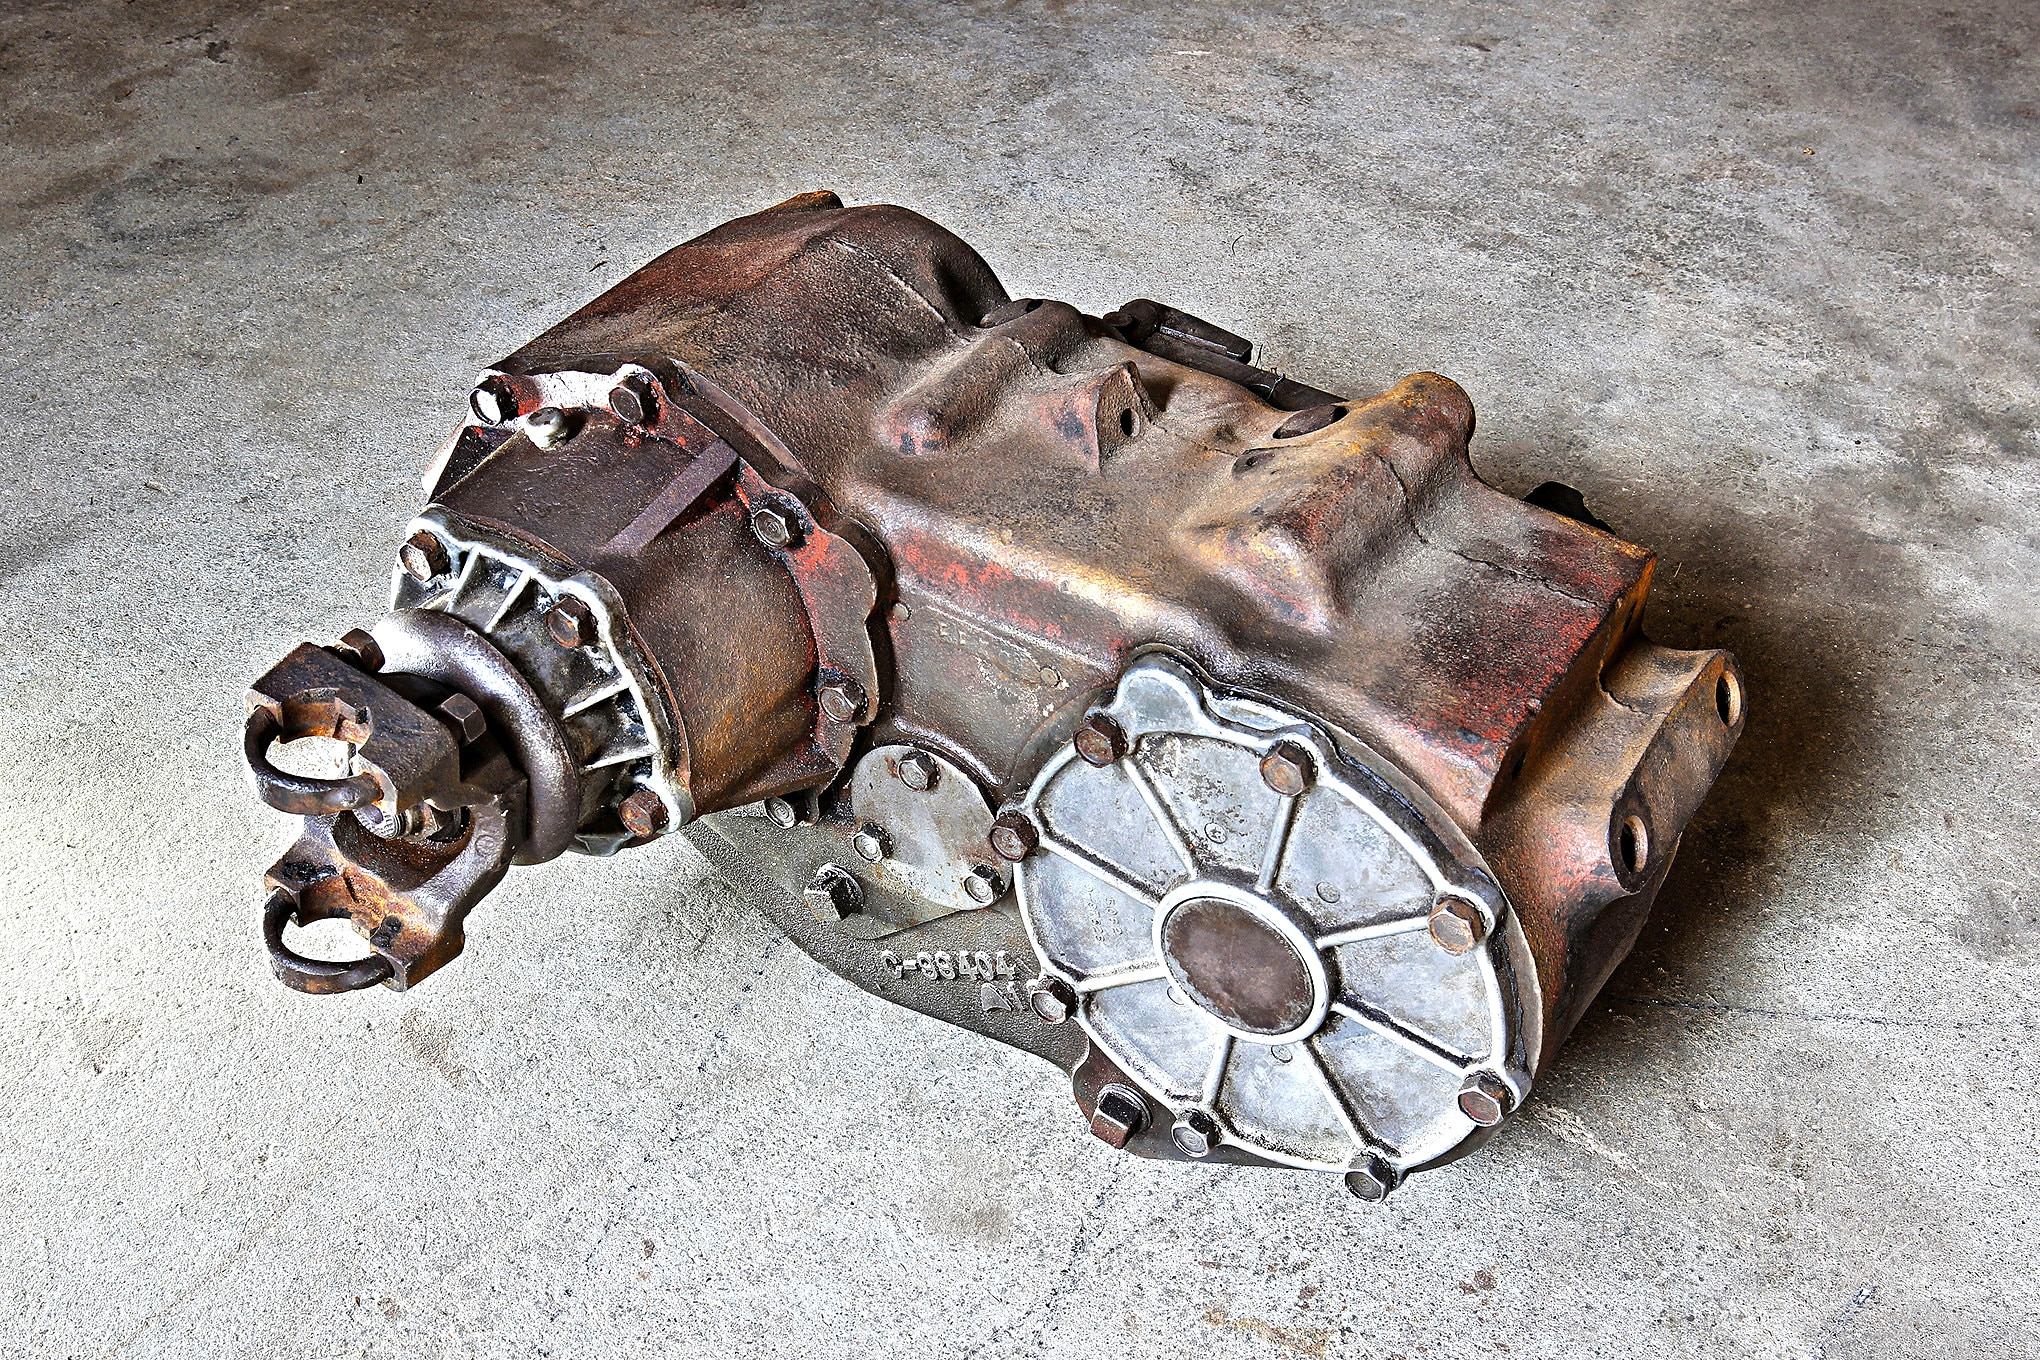 """Step one in this segment of B.O.B.'s driveline-strengthening program involved laying hands on a good, useable non-slip-yoke, figure-eight-pattern GM NP205 transfer case. In New England this isn't an especially difficult treasure hunt, and needing to """"know someone who knows someone"""" to locate one isn't a prerequisite—most trucks equipped with the 205 have long rusted out around their drivetrain parts."""